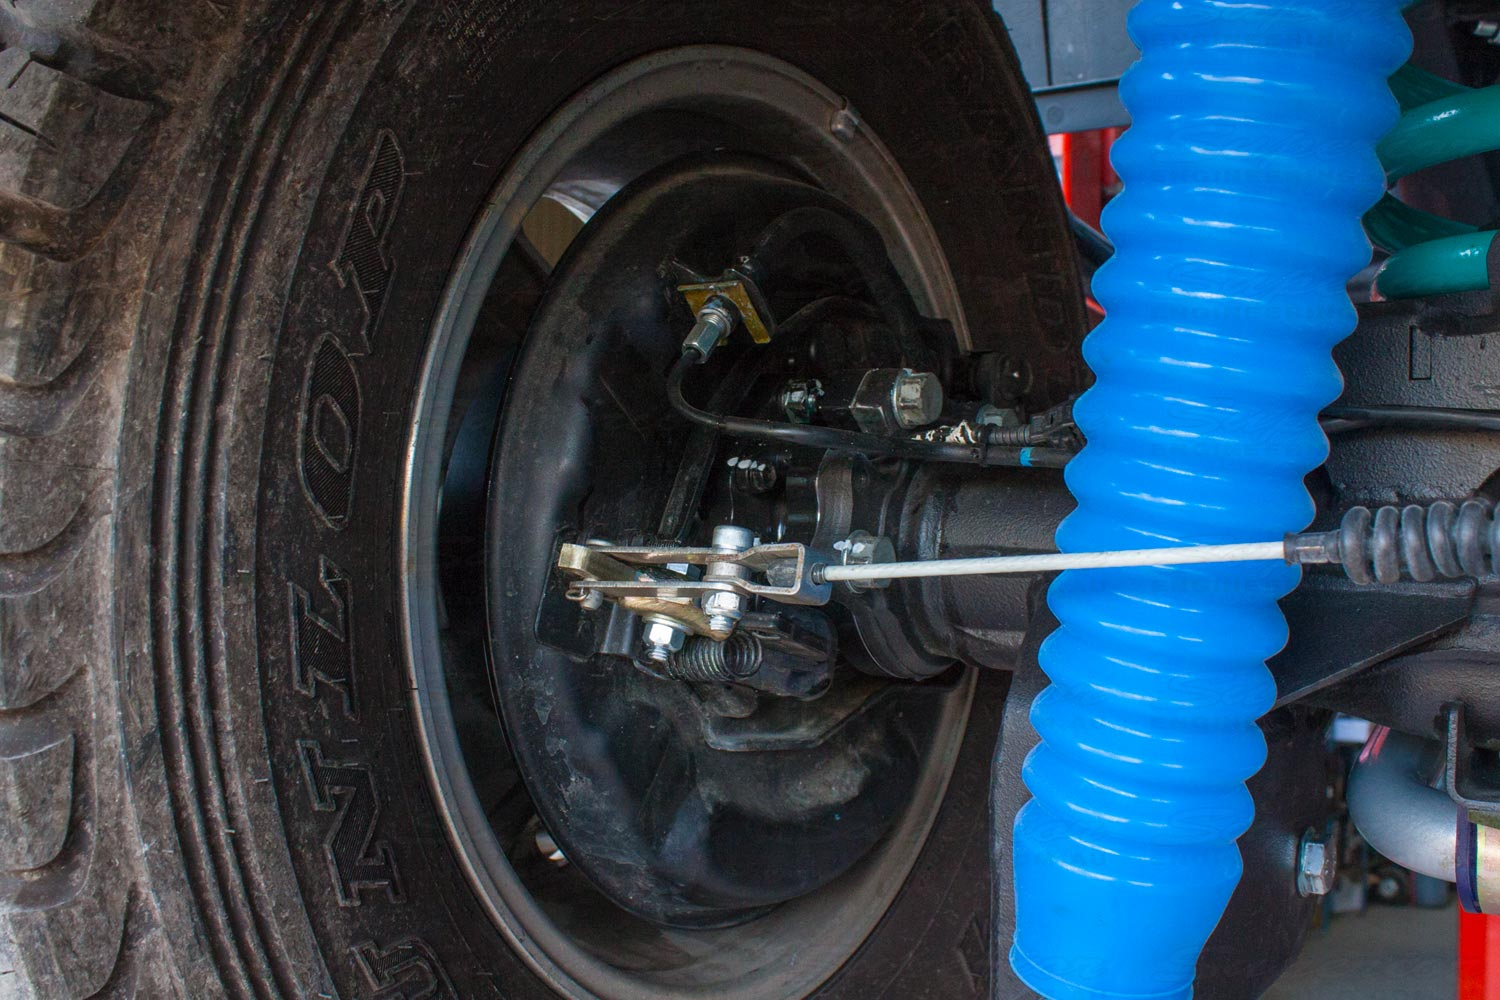 Closeup view of a fitted Multidrive Technology MDT Tru Tracker rear axle on a 79 Series Toyota Landcruiser